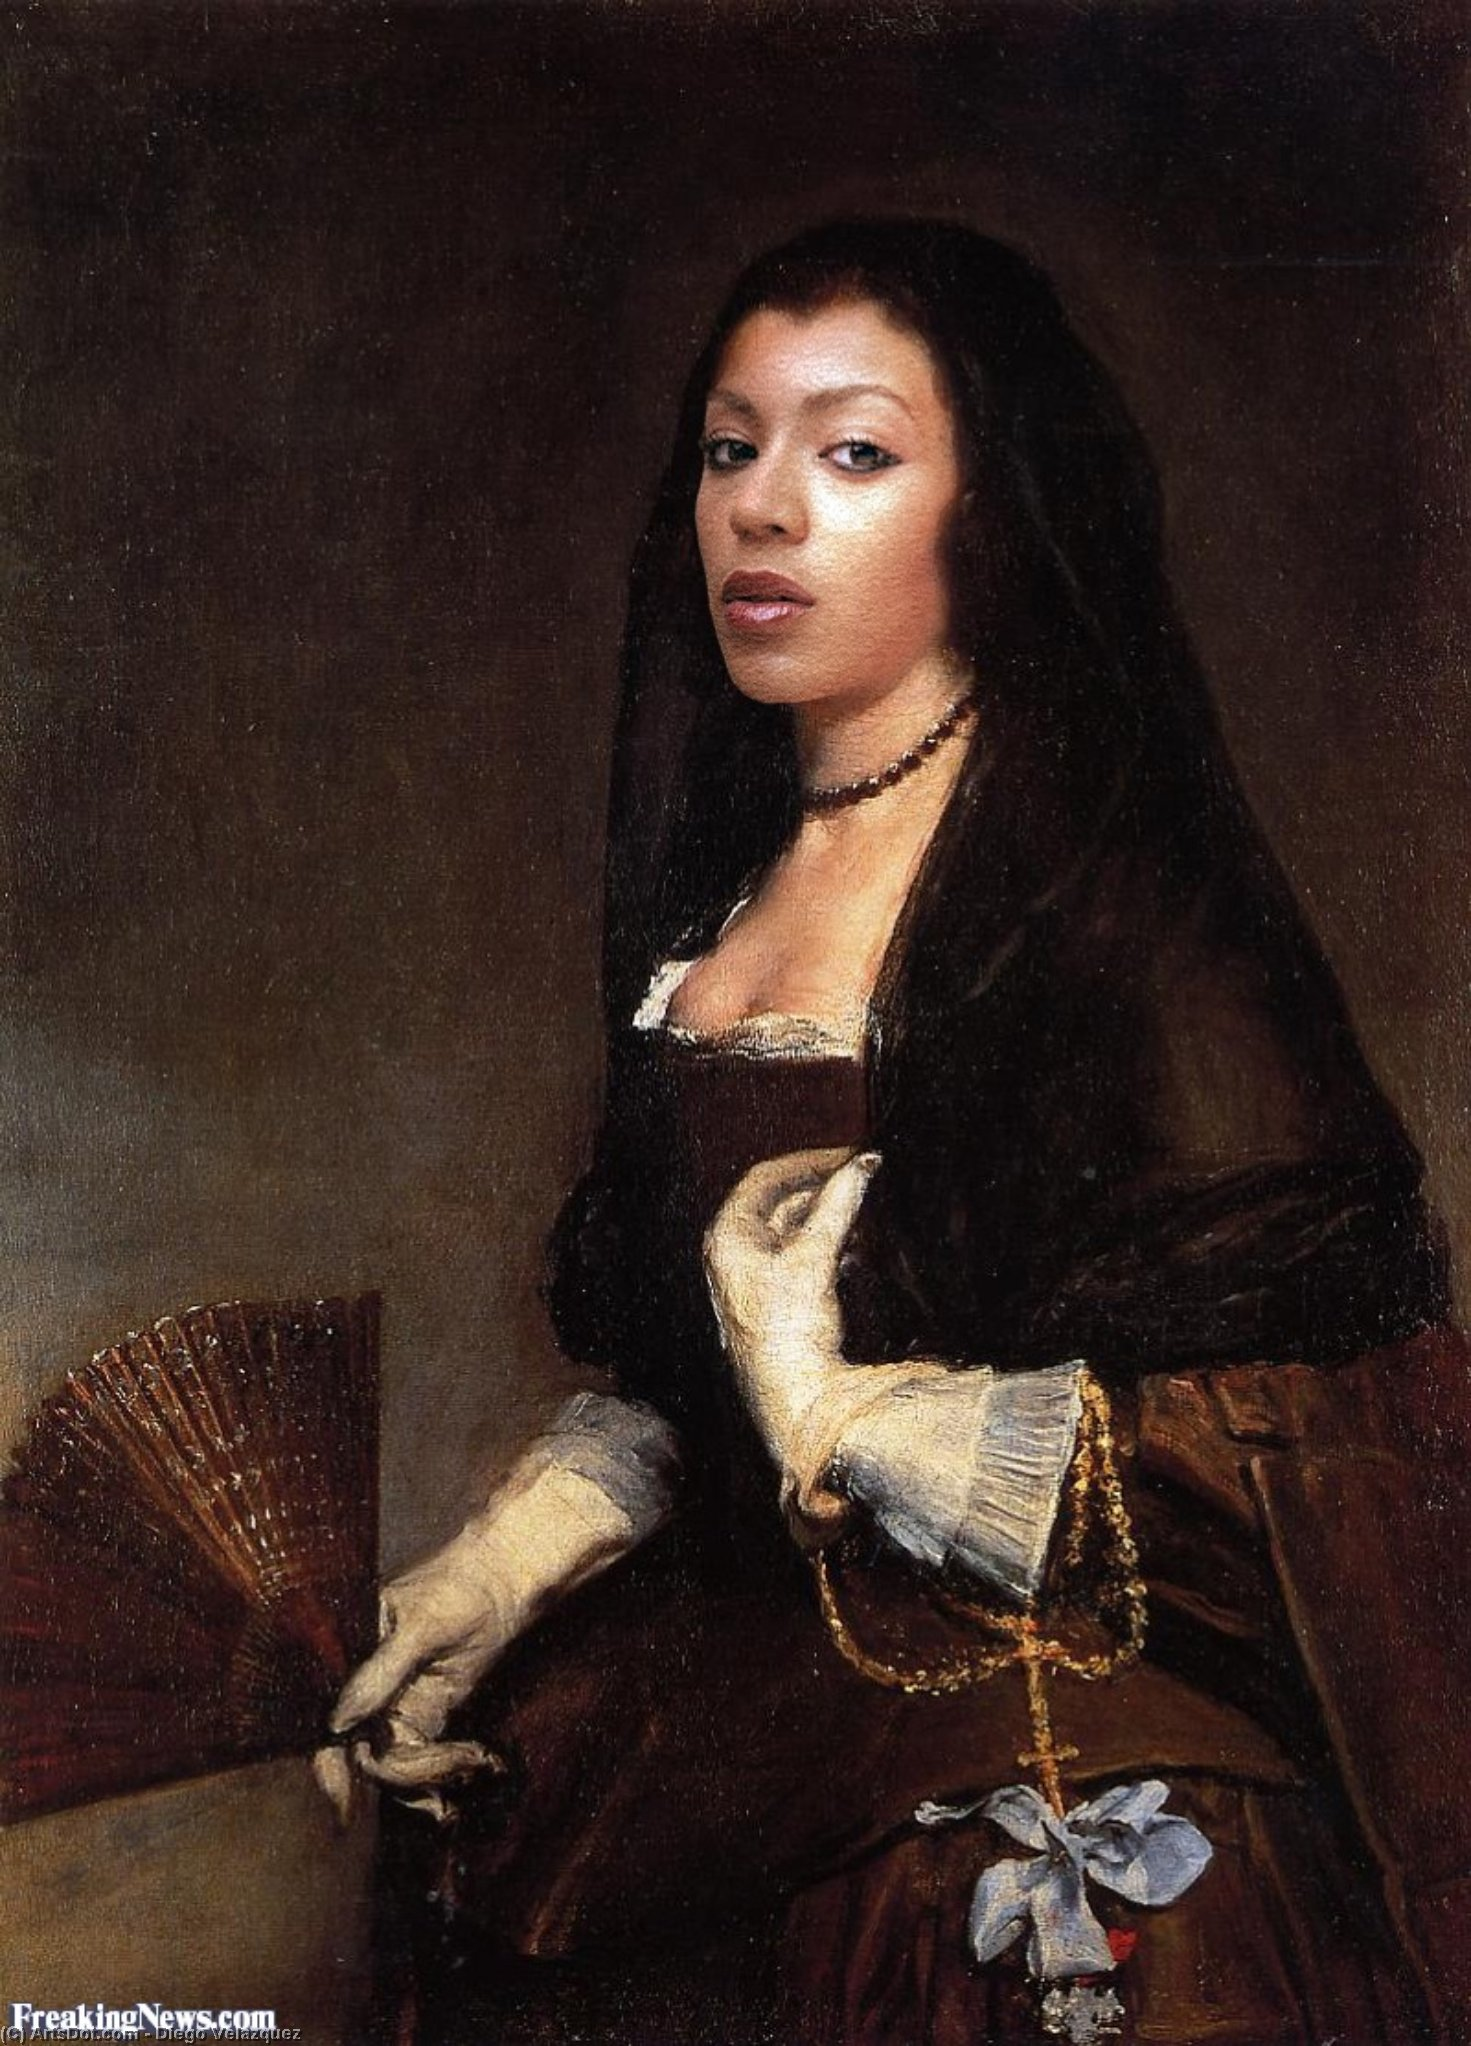 Lady with a Fan by Diego Velazquez (1599-1660, Spain)